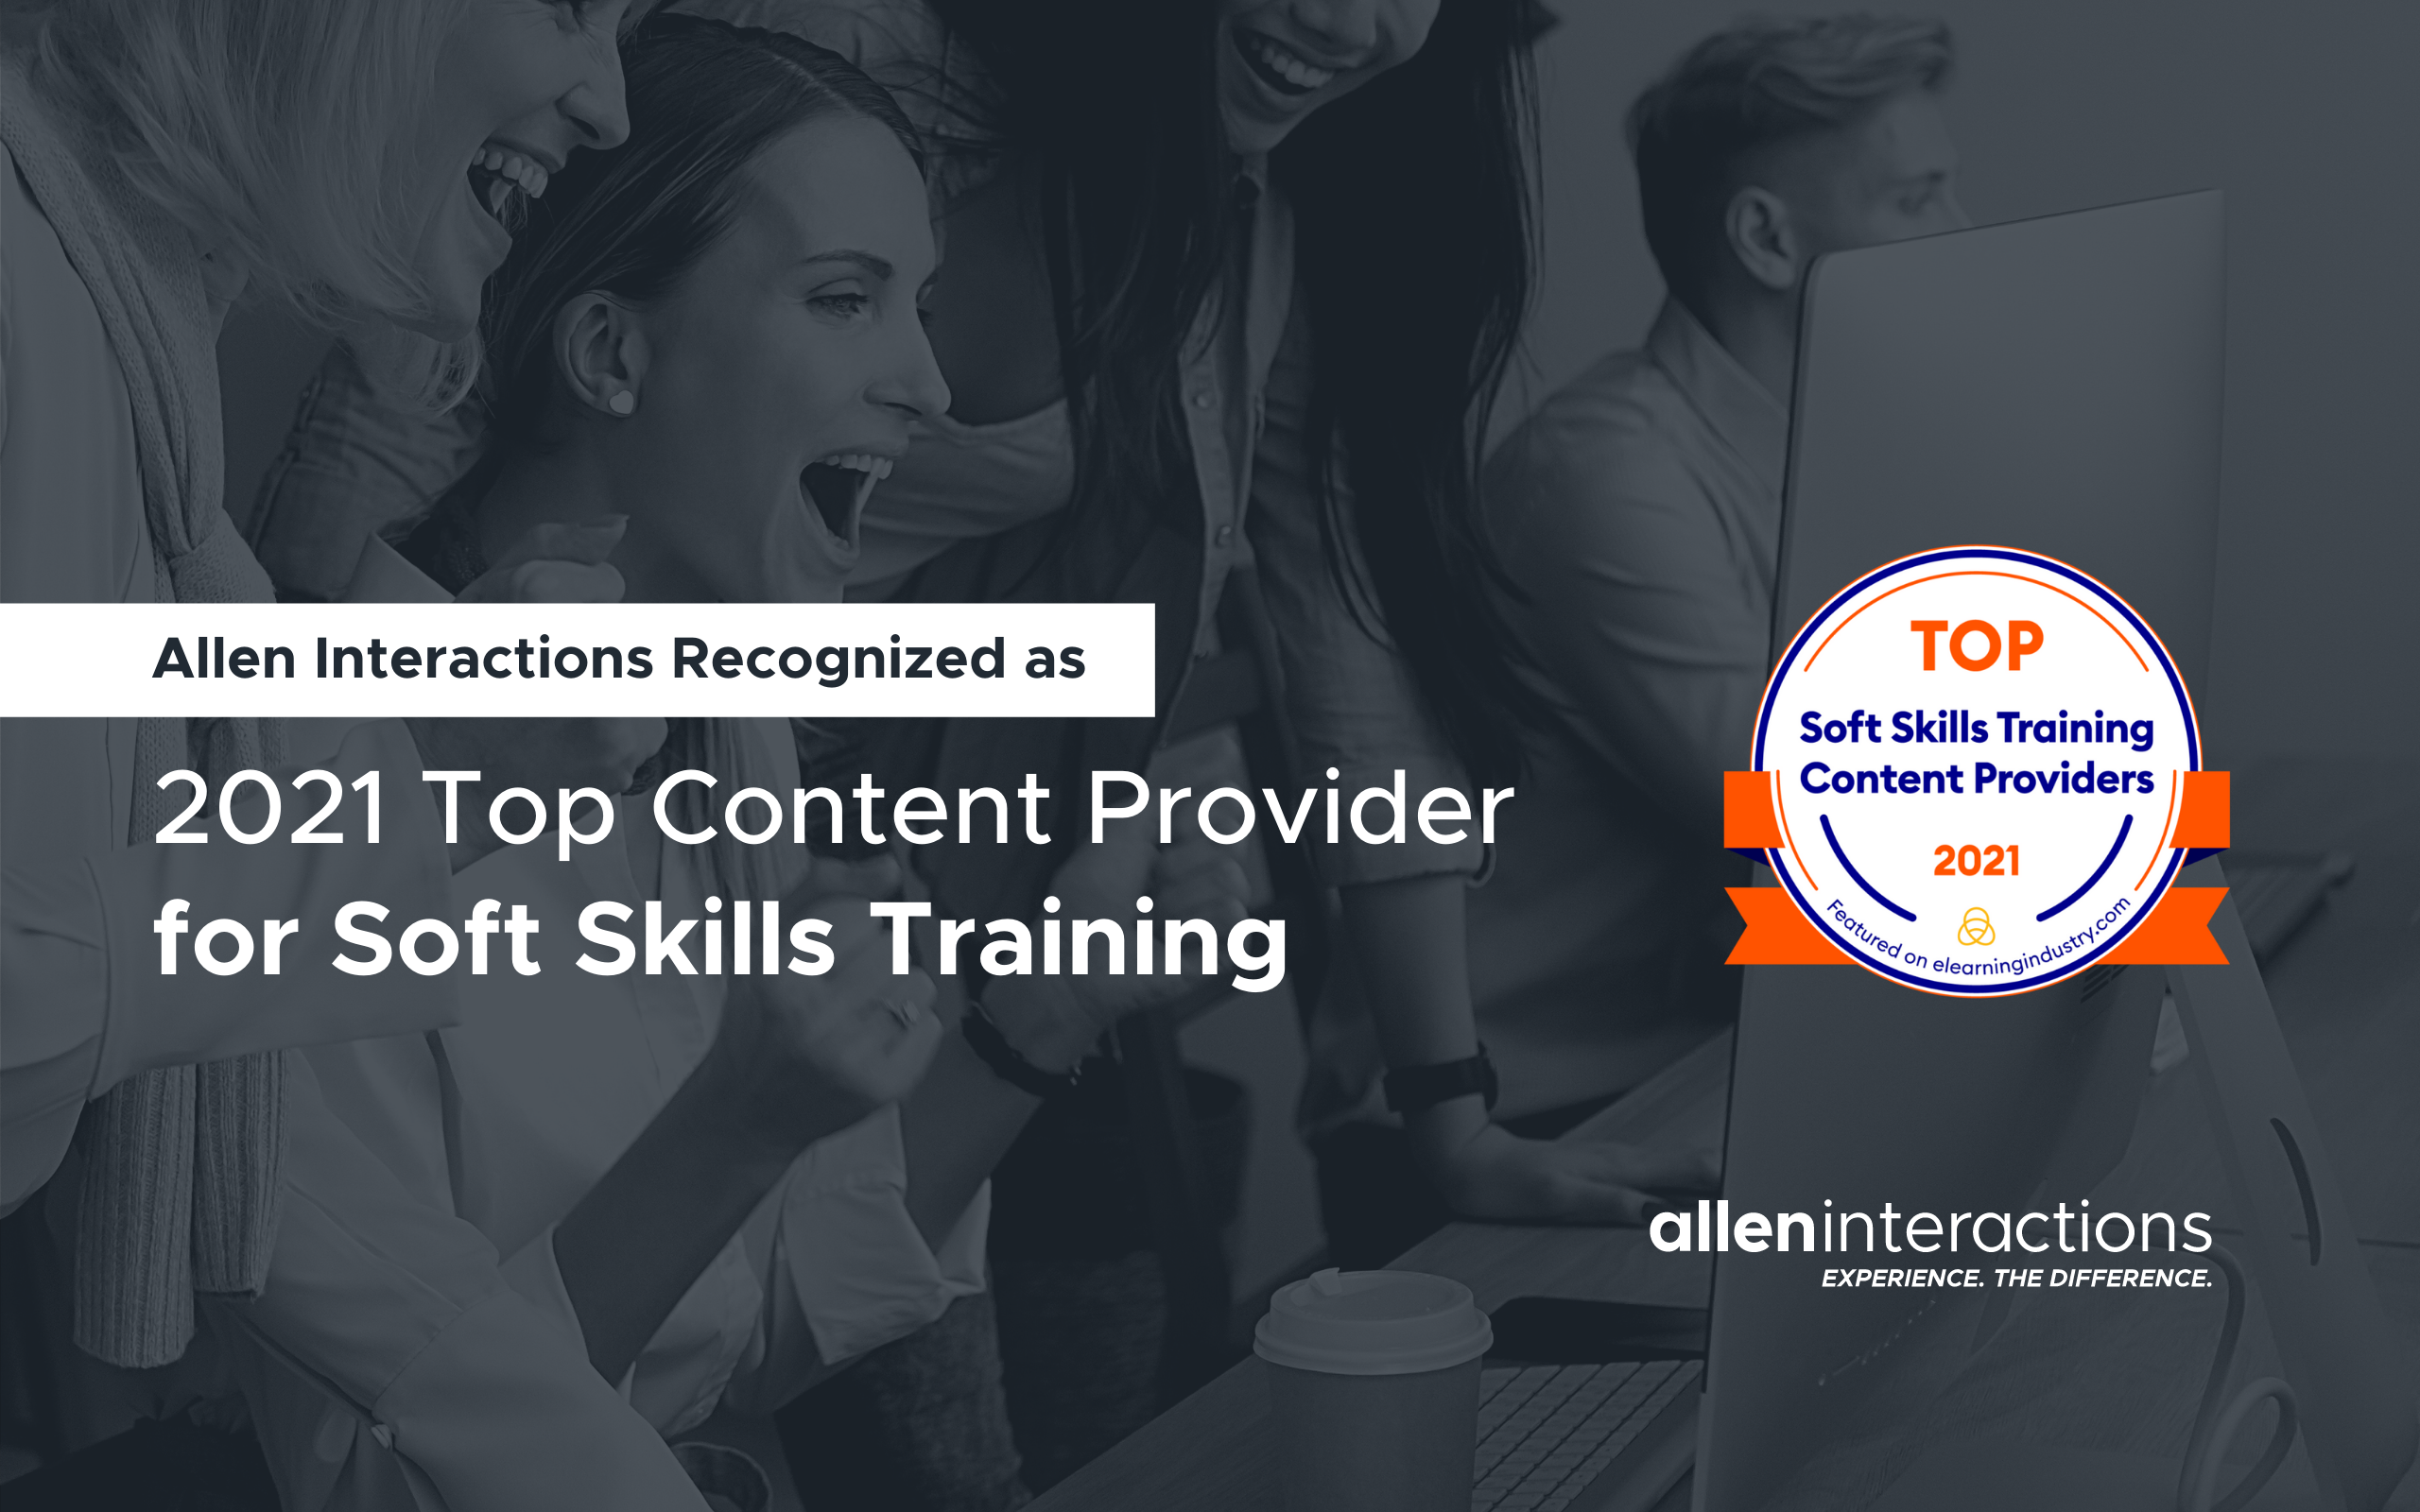 Allen Interactions Recognized by eLearning Industry as a 2021 Top Content Provider for Soft Skills Training